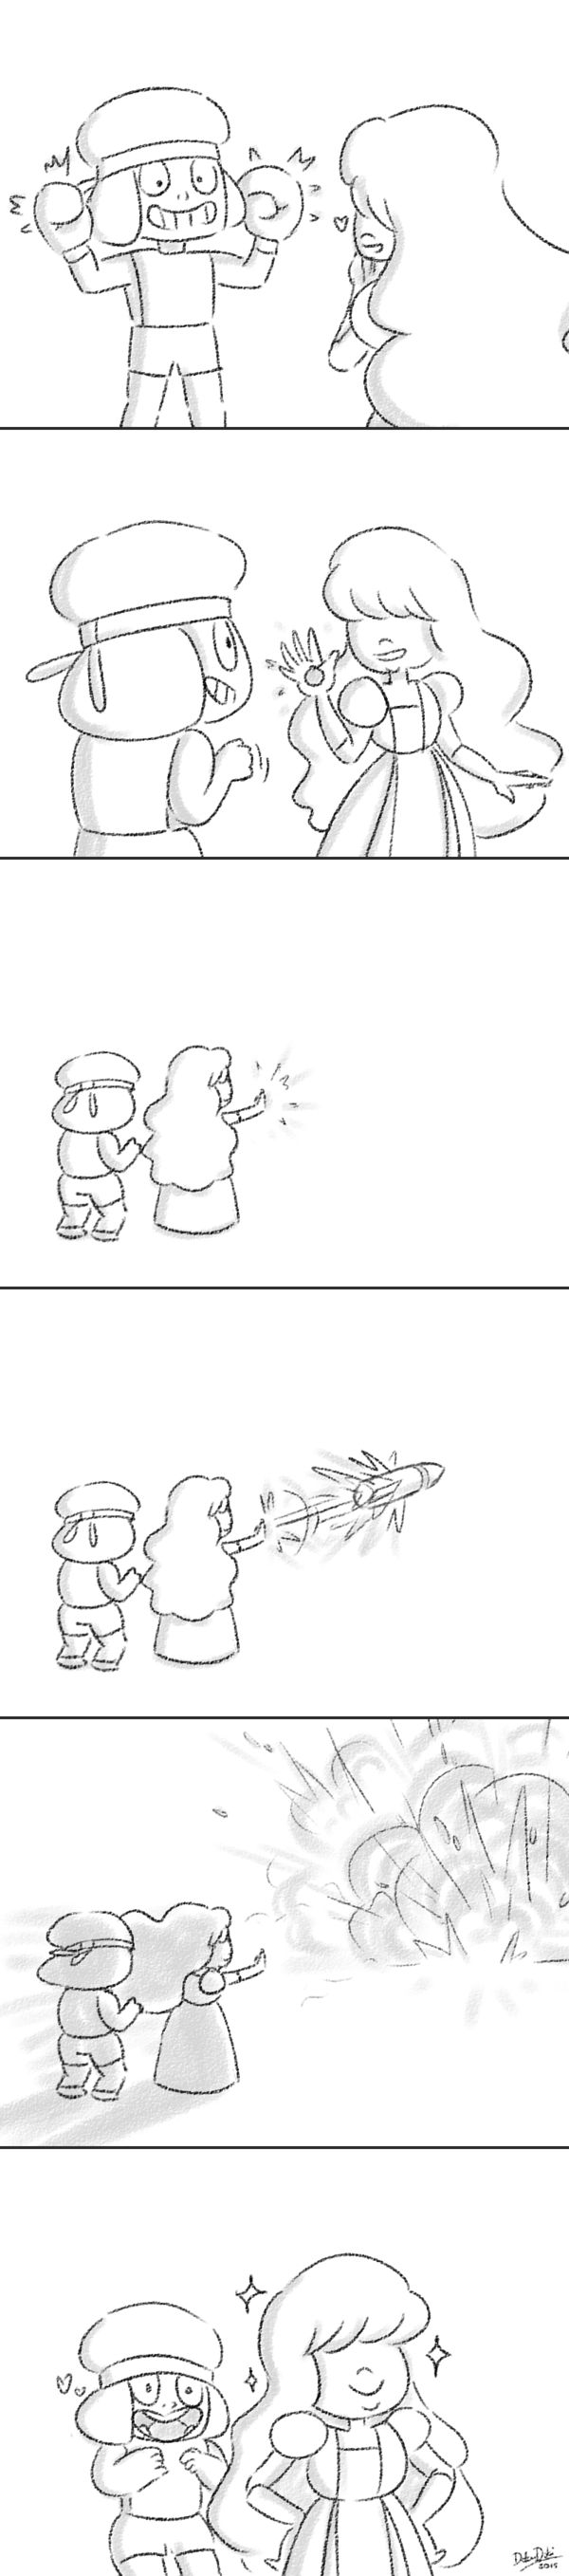 Ruby and Sapphire's Weapons by DokuDoki.deviantart.com on @DeviantArt